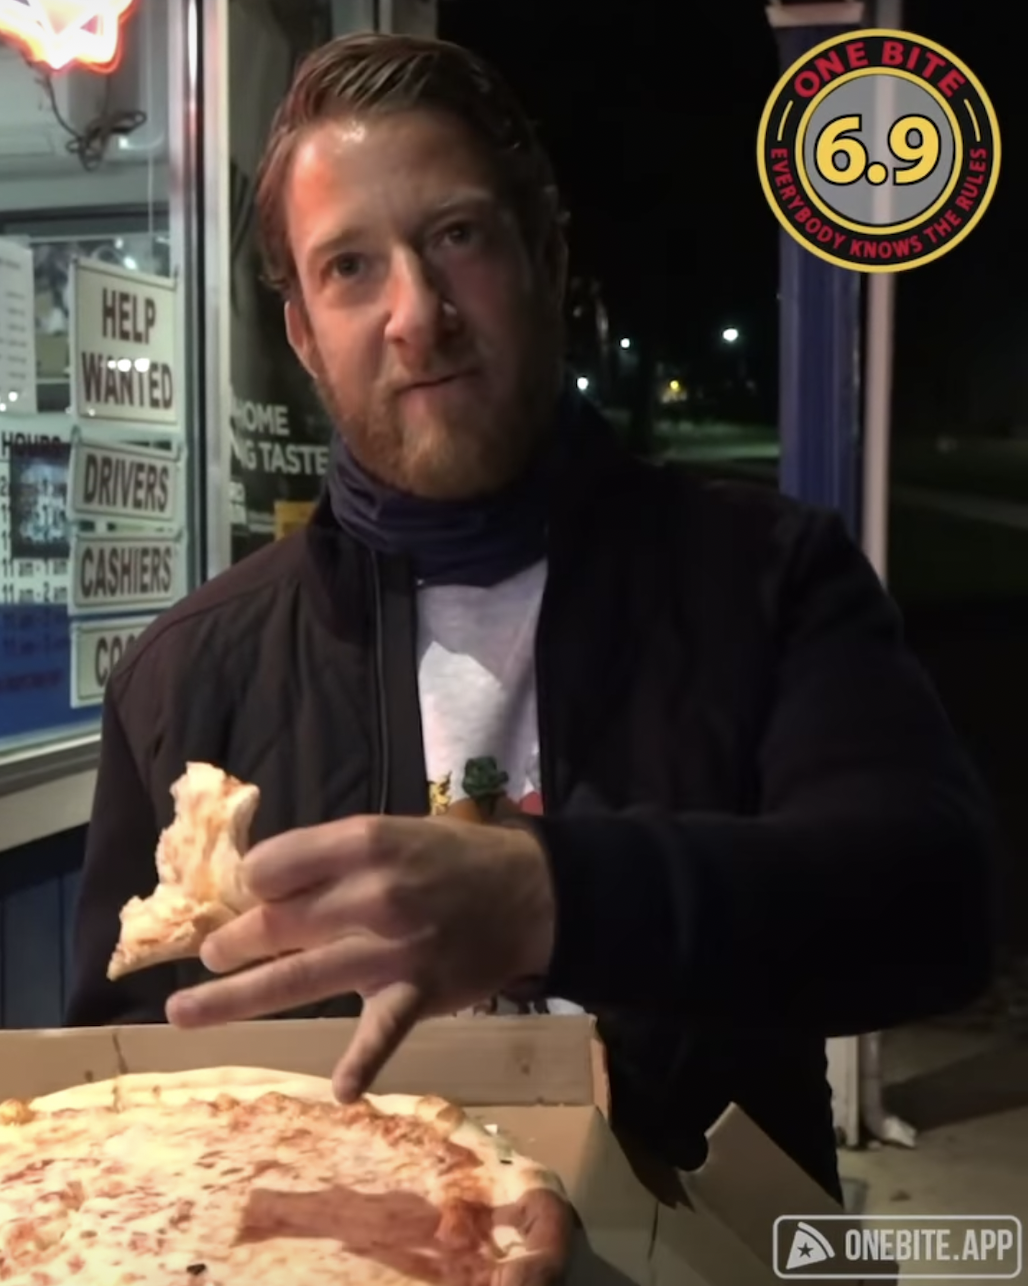 Dave Portnoy eats a slice from Campus Corner Pizza and rates it a formidable 6.9.